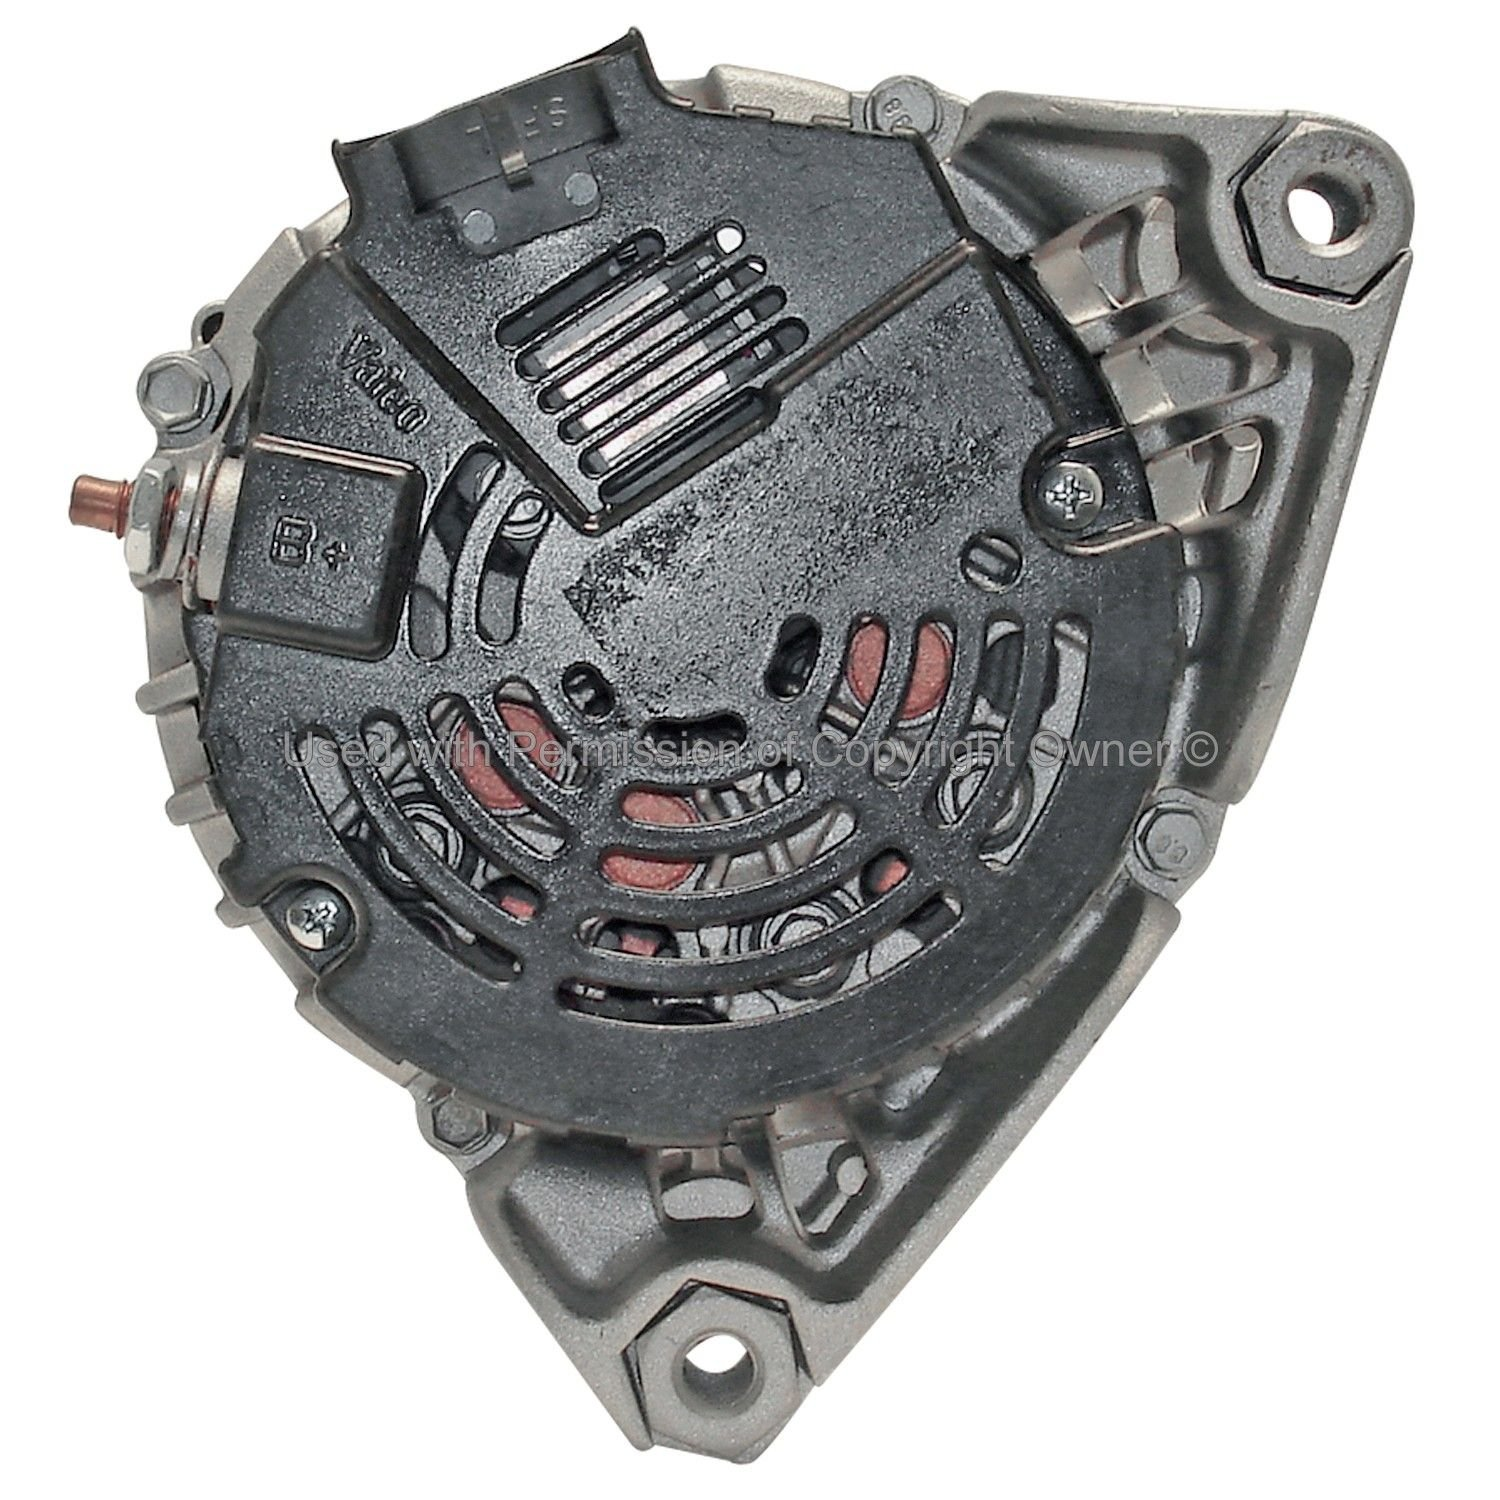 Saturn Vue Alternator Replacement Acdelco Denso Mpa Remy Valeo Transmission Belt 2002 6 Cyl 30l 13938